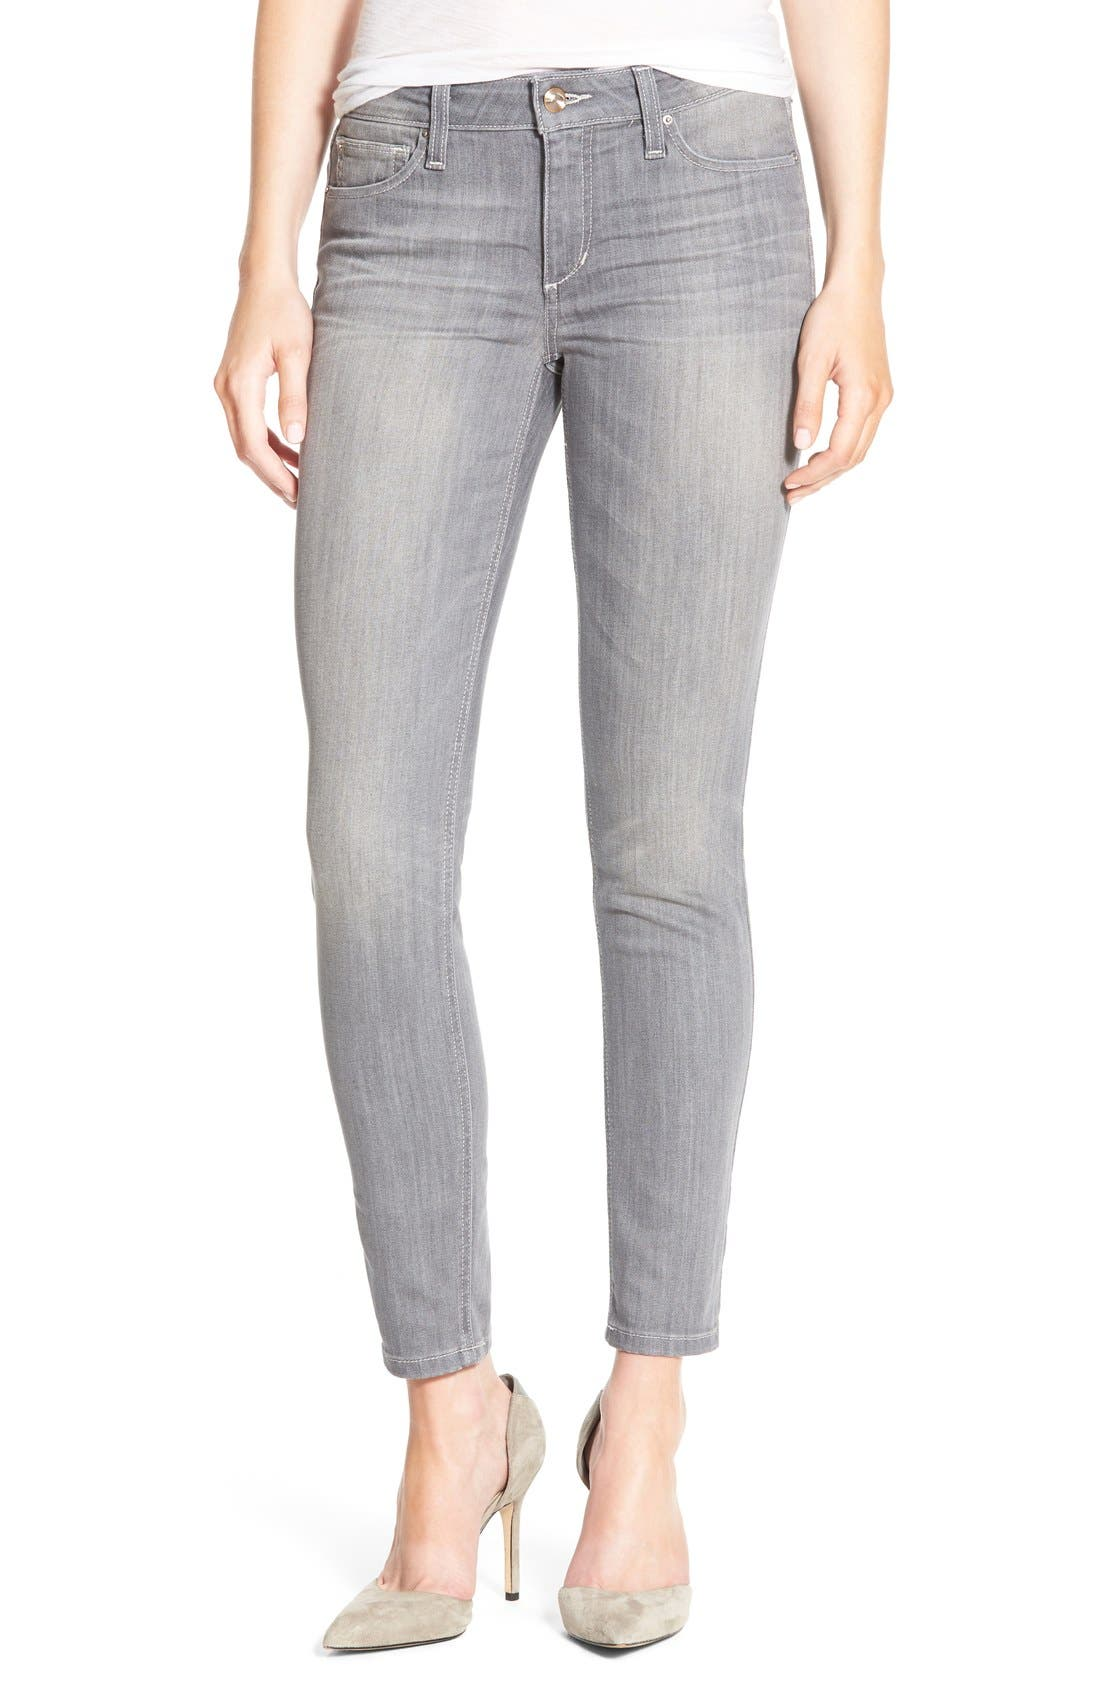 Alternate Image 1 Selected - Joe's 'Cool Off - Vixen' Ankle Skinny Jeans with Phone Pocket (Justina)